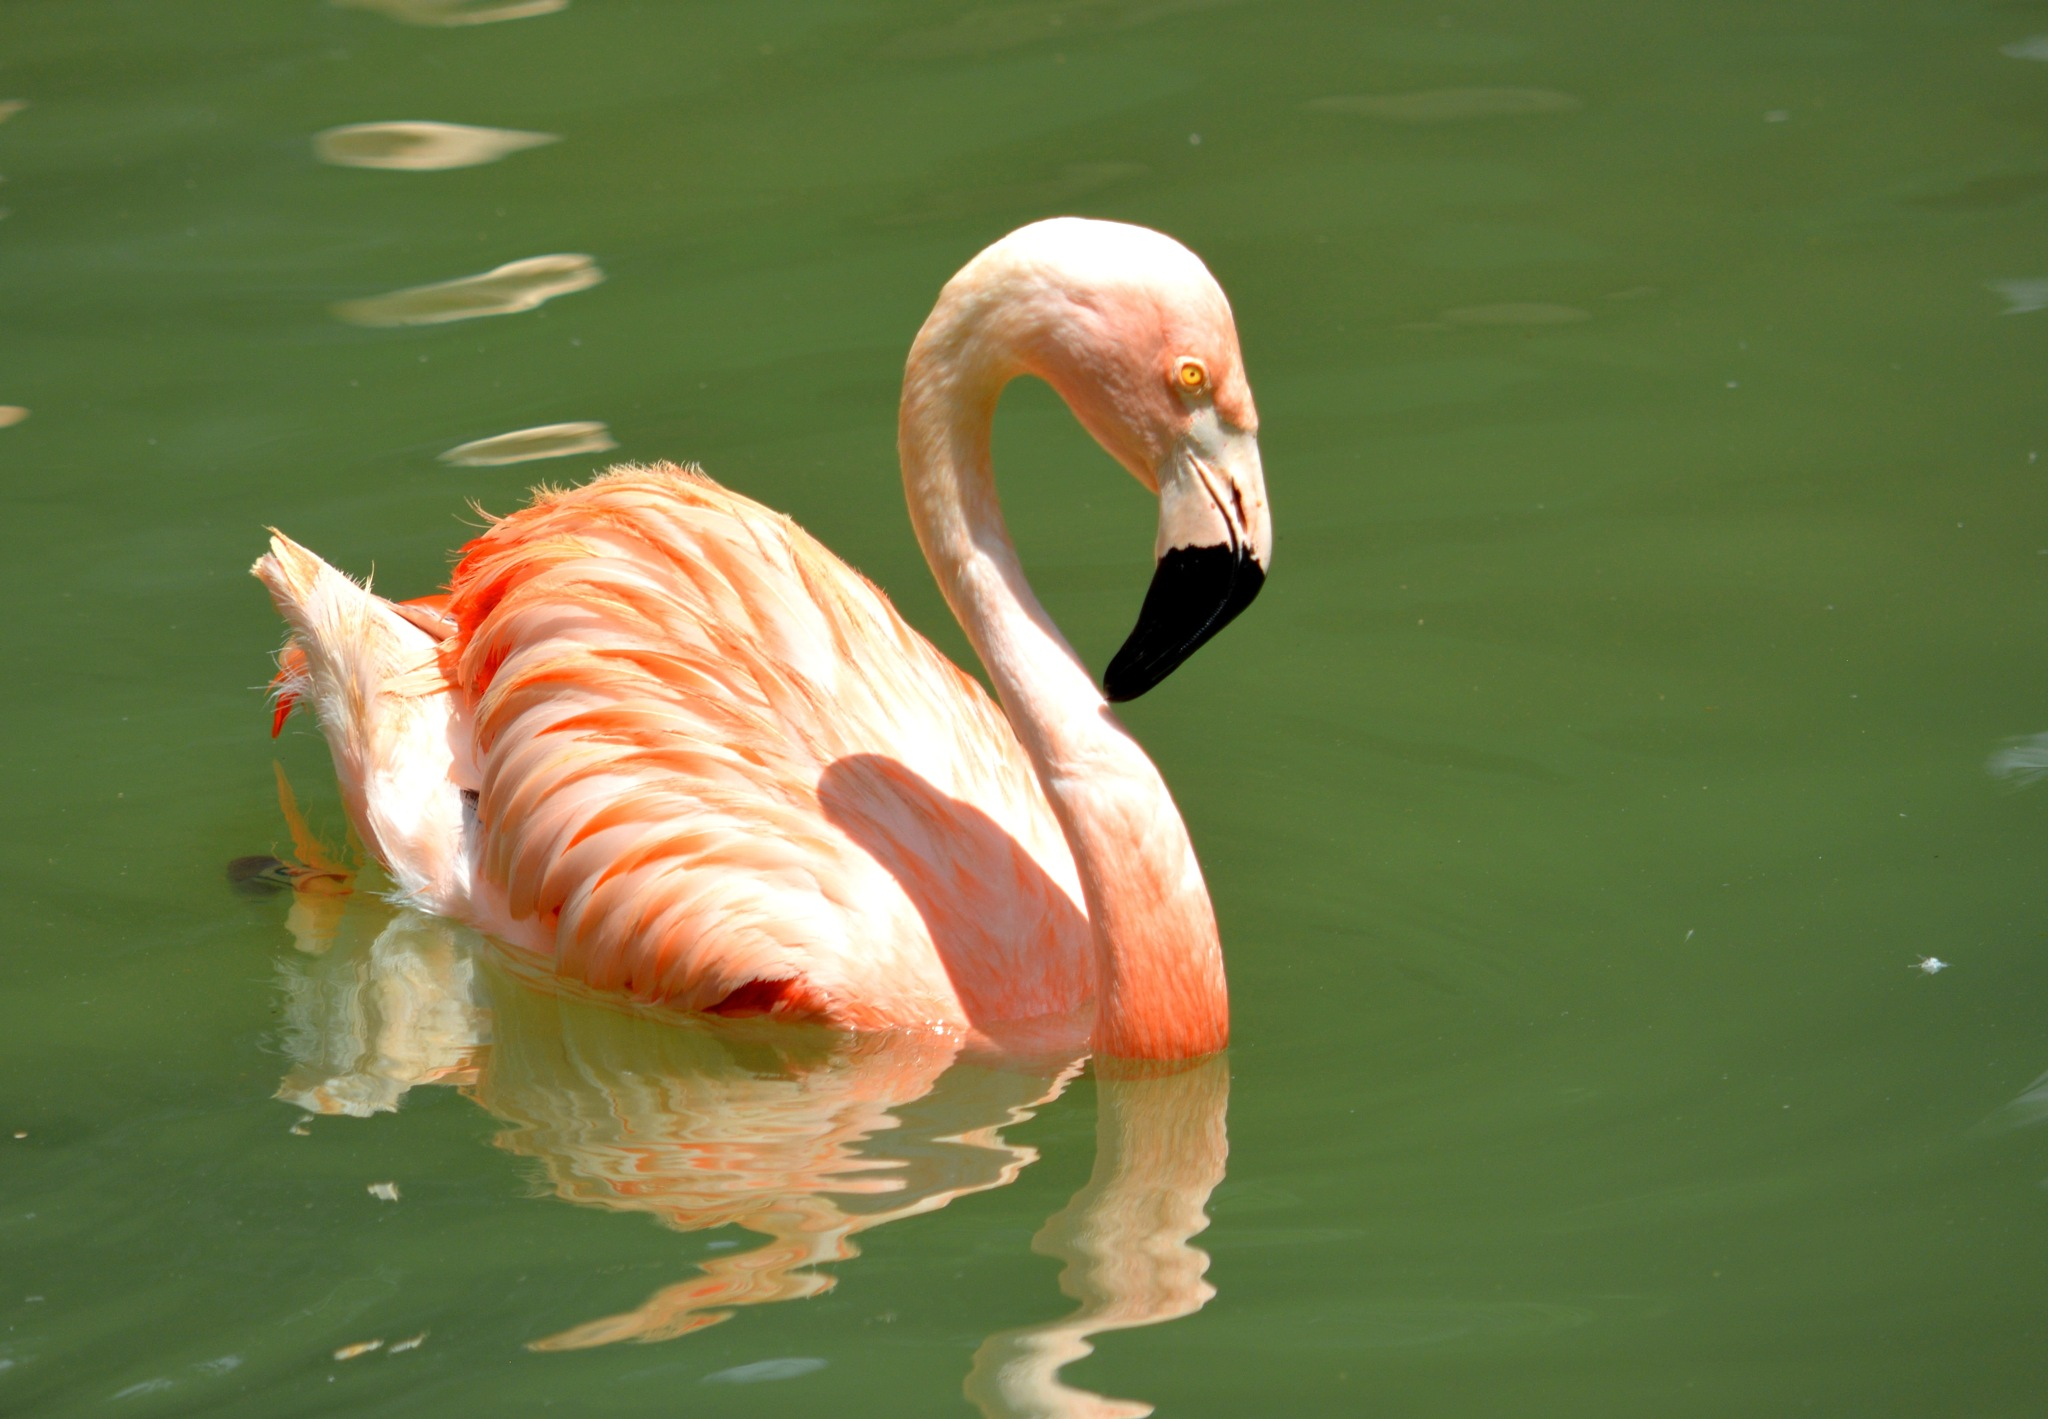 Pretty in pink by laboisselle